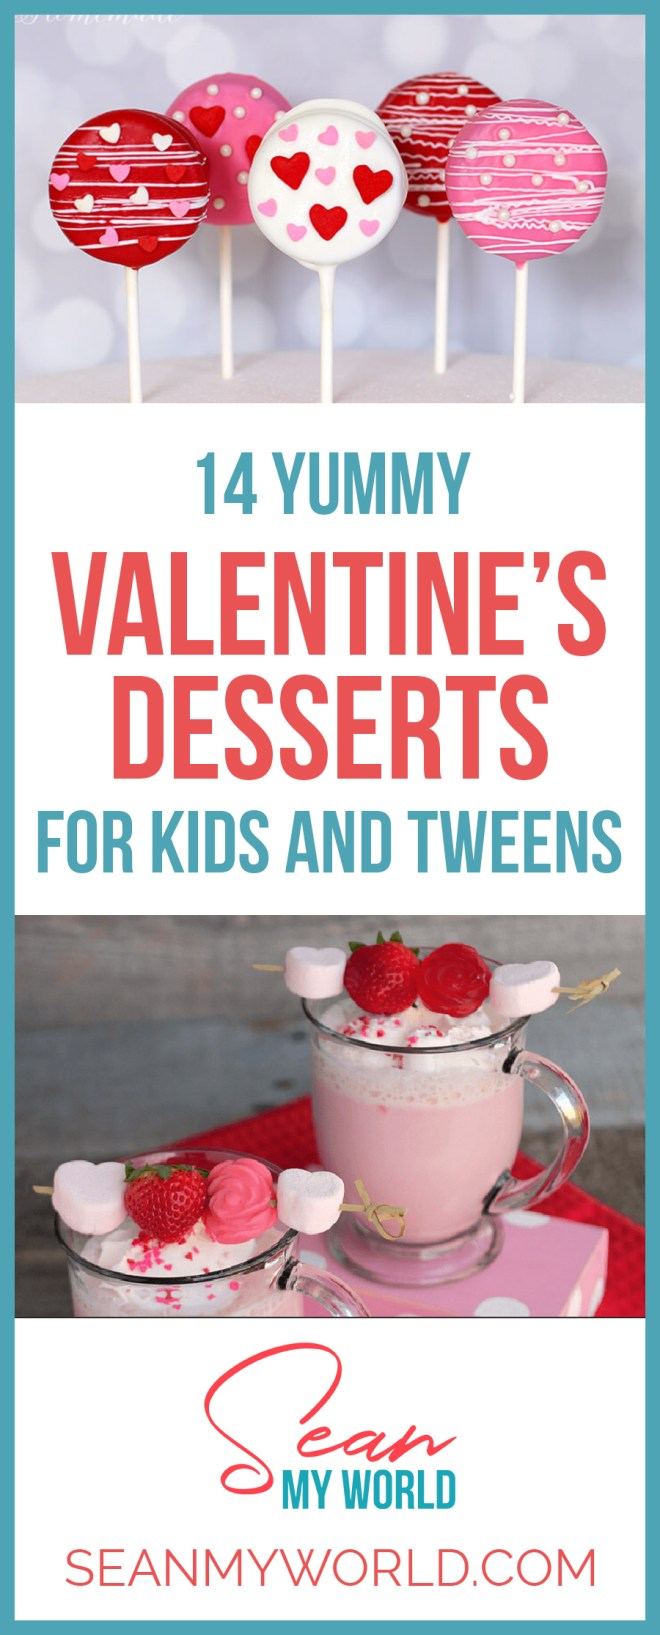 If you love Valentine's Day, you'll love these Valentines treats recipes. Kids love them, but adults adore these Valentines treats recipes too!